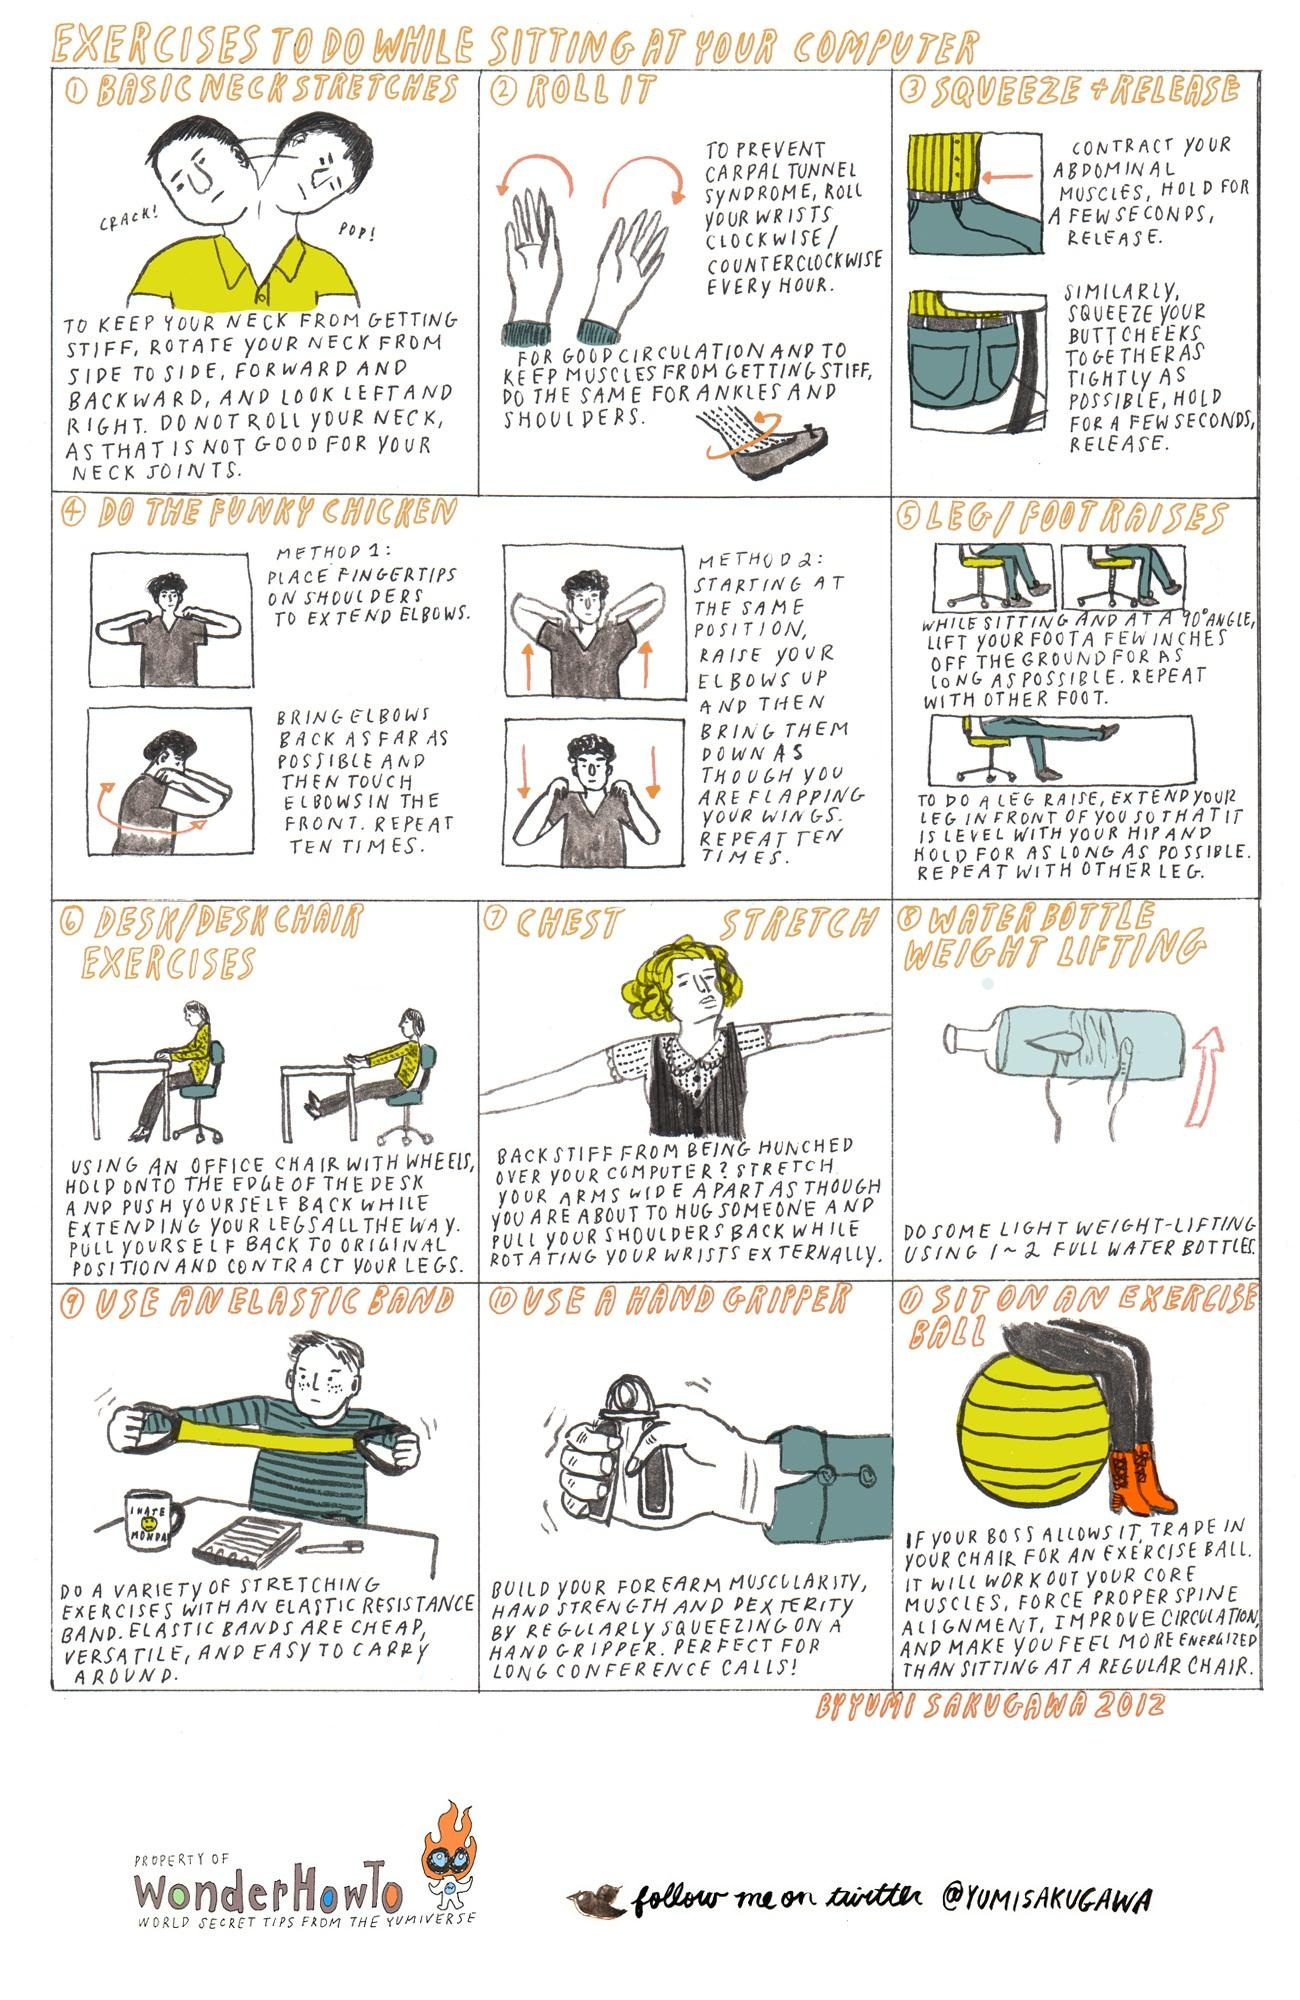 Exercises For Computer Users And Office Workers